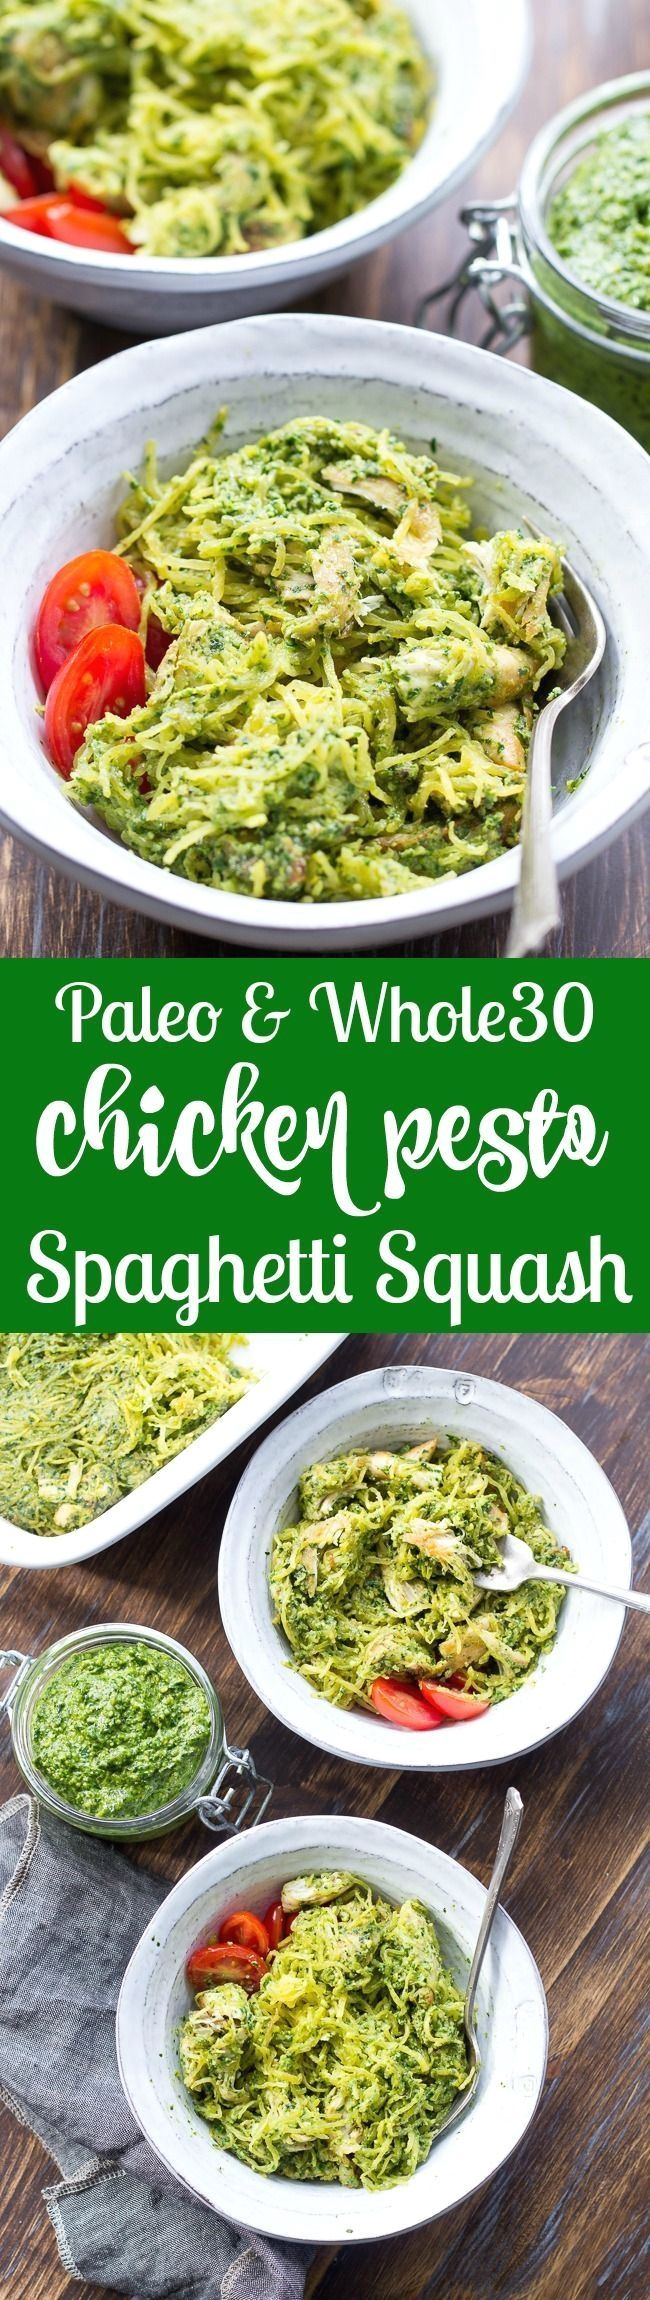 Perfectly cooked spaghetti squash is tossed with a flavor-packed Paleo & Whole30 pesto and seasoned chicken for a healthy filling meal even squash haters will love! This Paleo spaghetti squash dinner makes great leftovers too! Whole30, dairy free and low carb. https://www.pinterest.com/pin/53691420541576003/